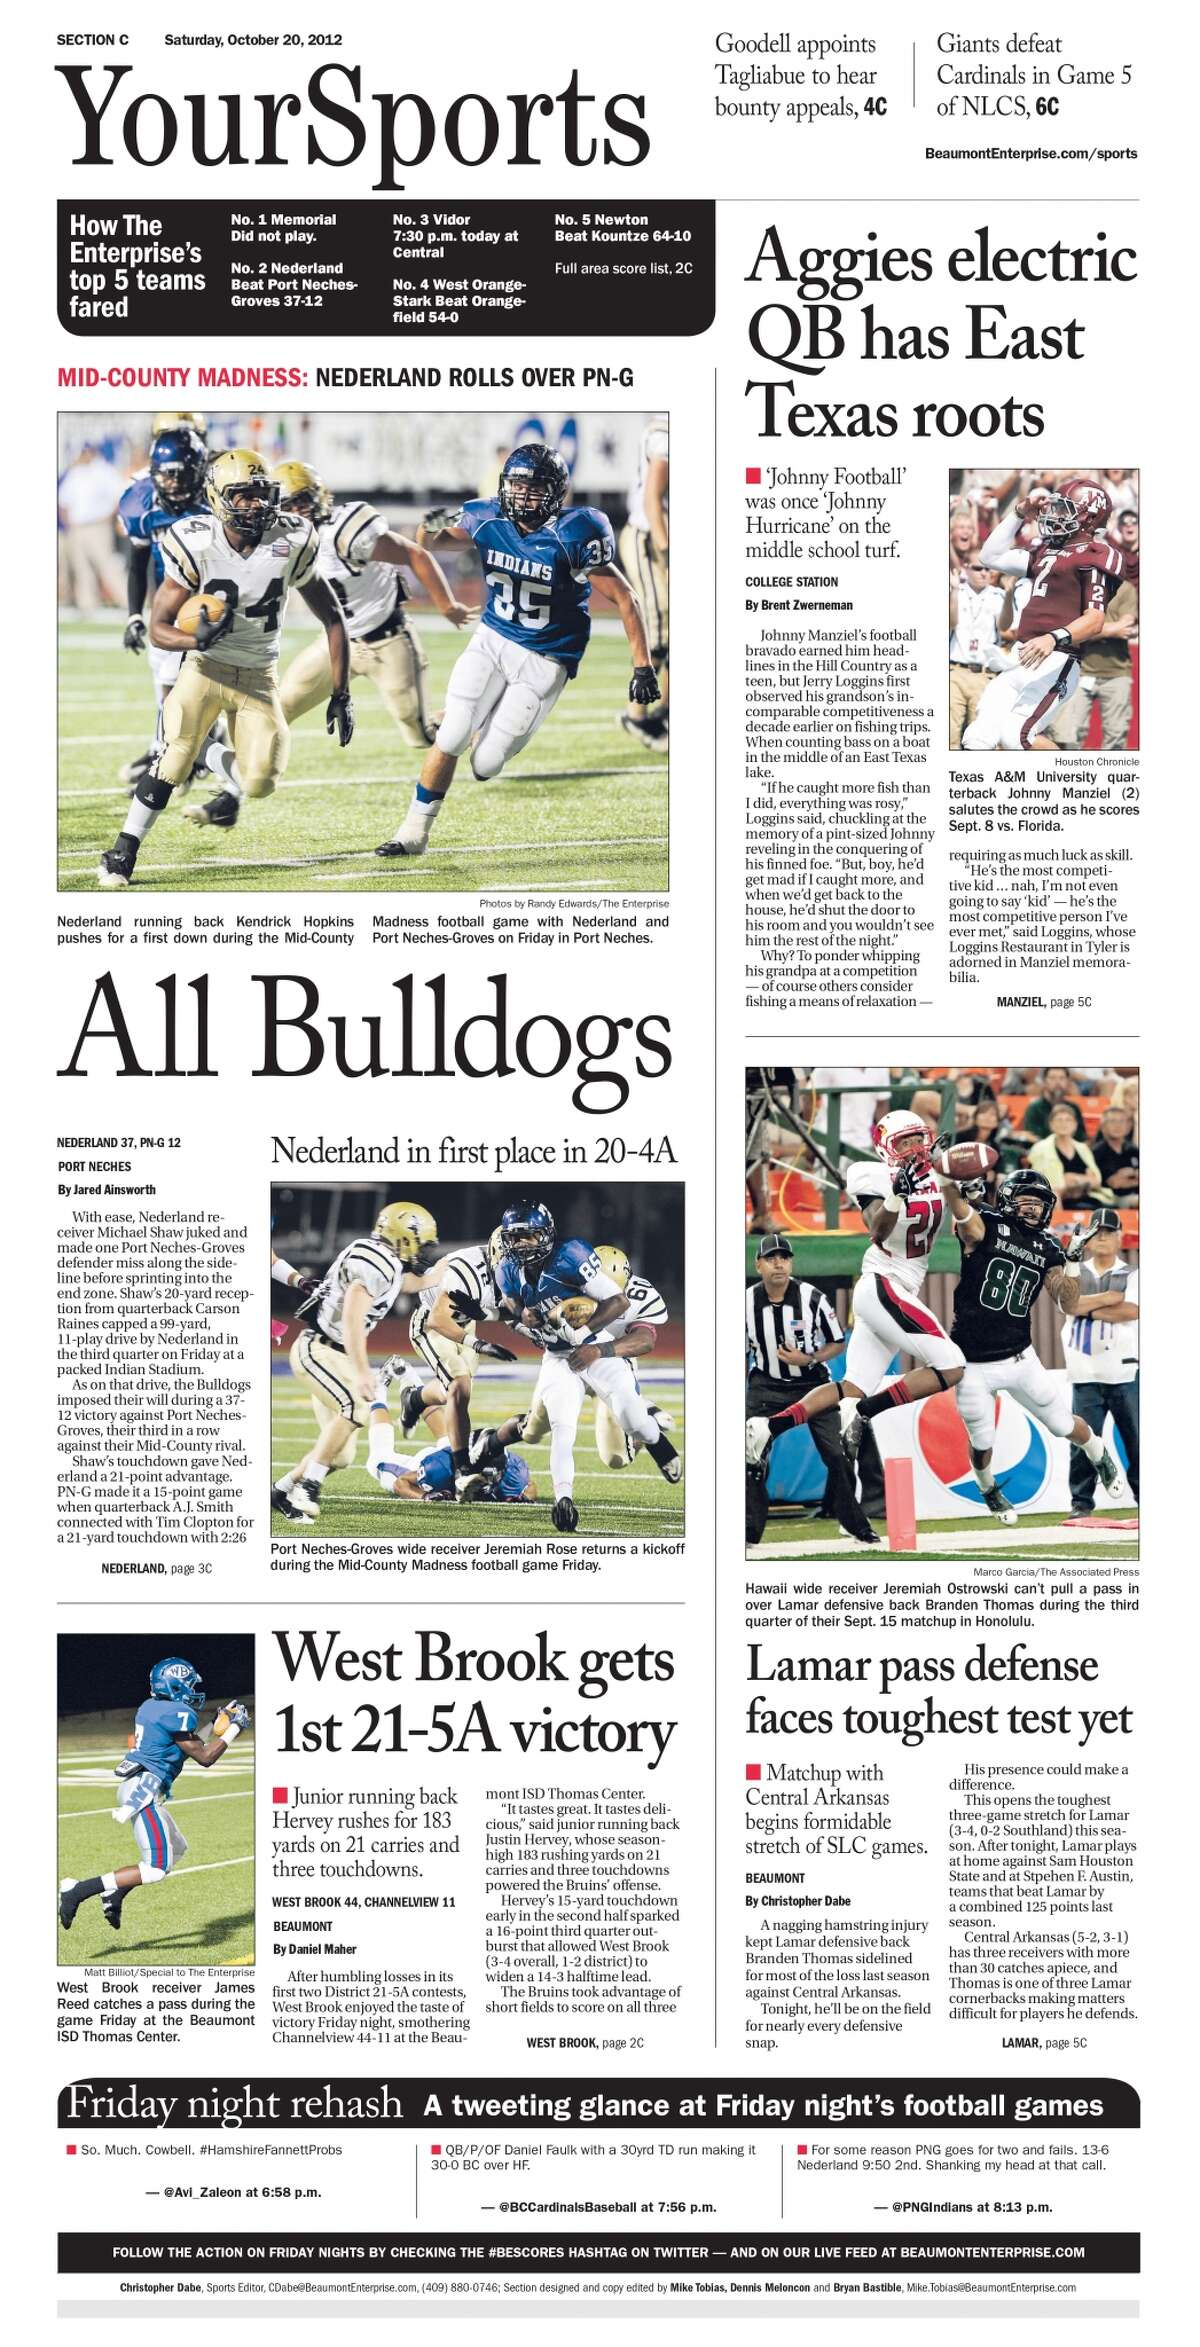 High School Football: 2012 Mid-County Madness sports cover. Nederland 37, PN-G 12.